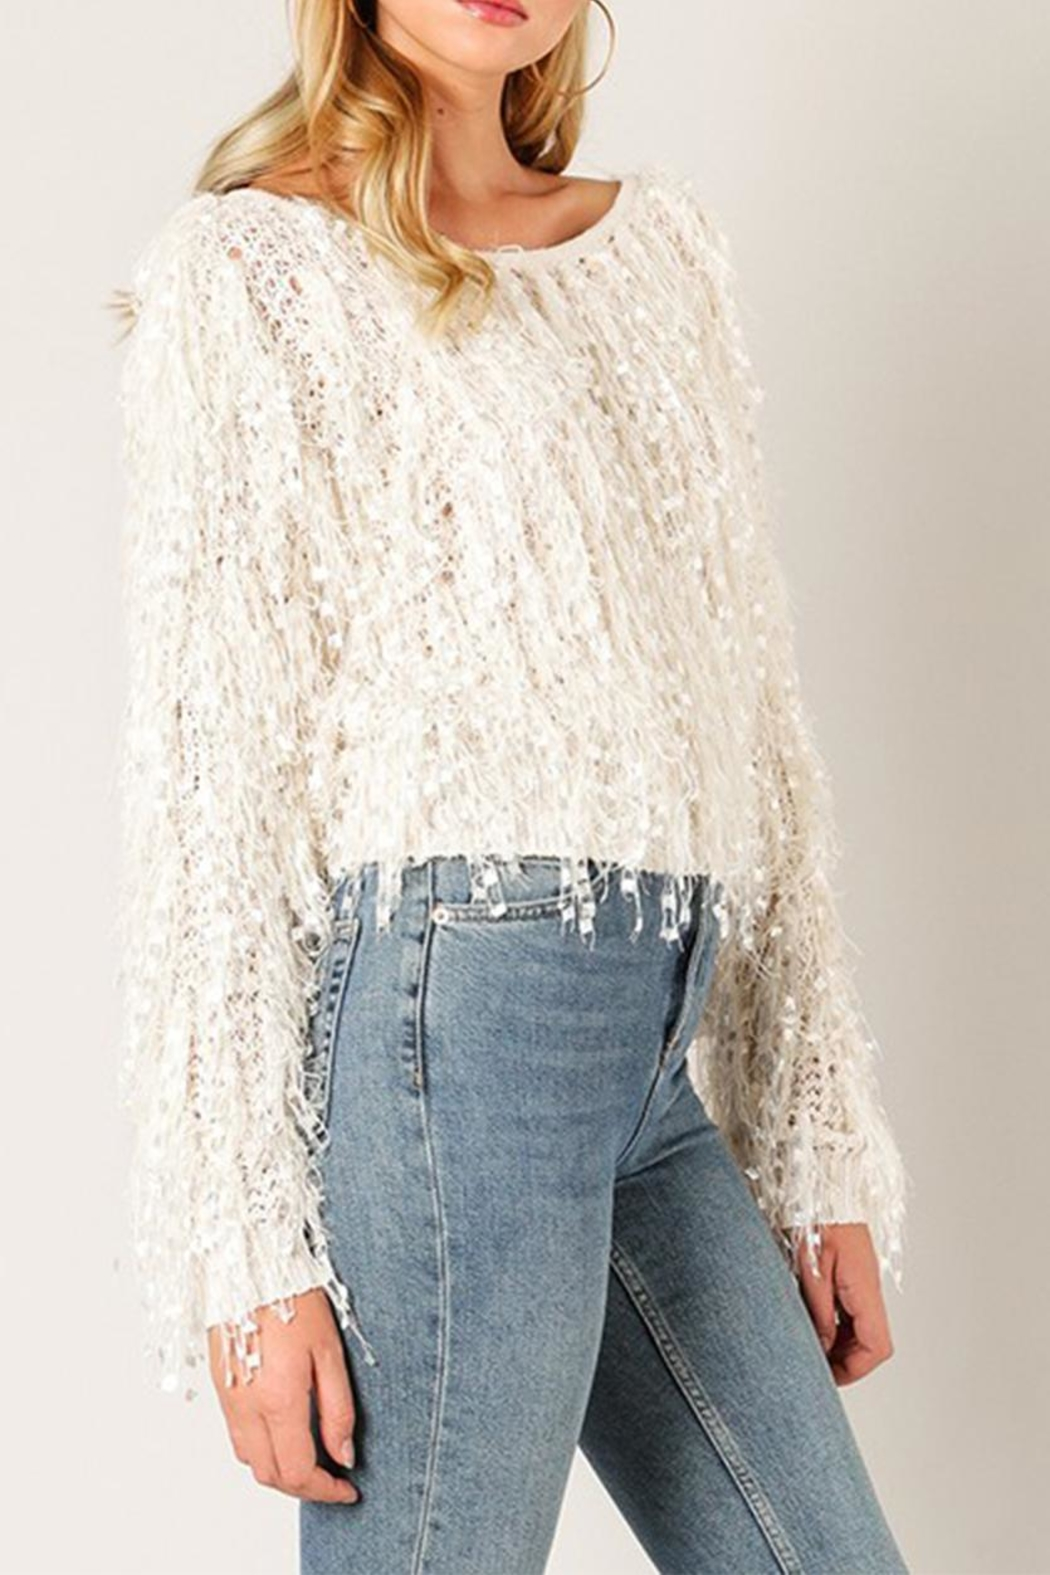 eb7cb98f703261 Wow Couture Shaggy Fringe Sweater from New York by Dor L'Dor ...